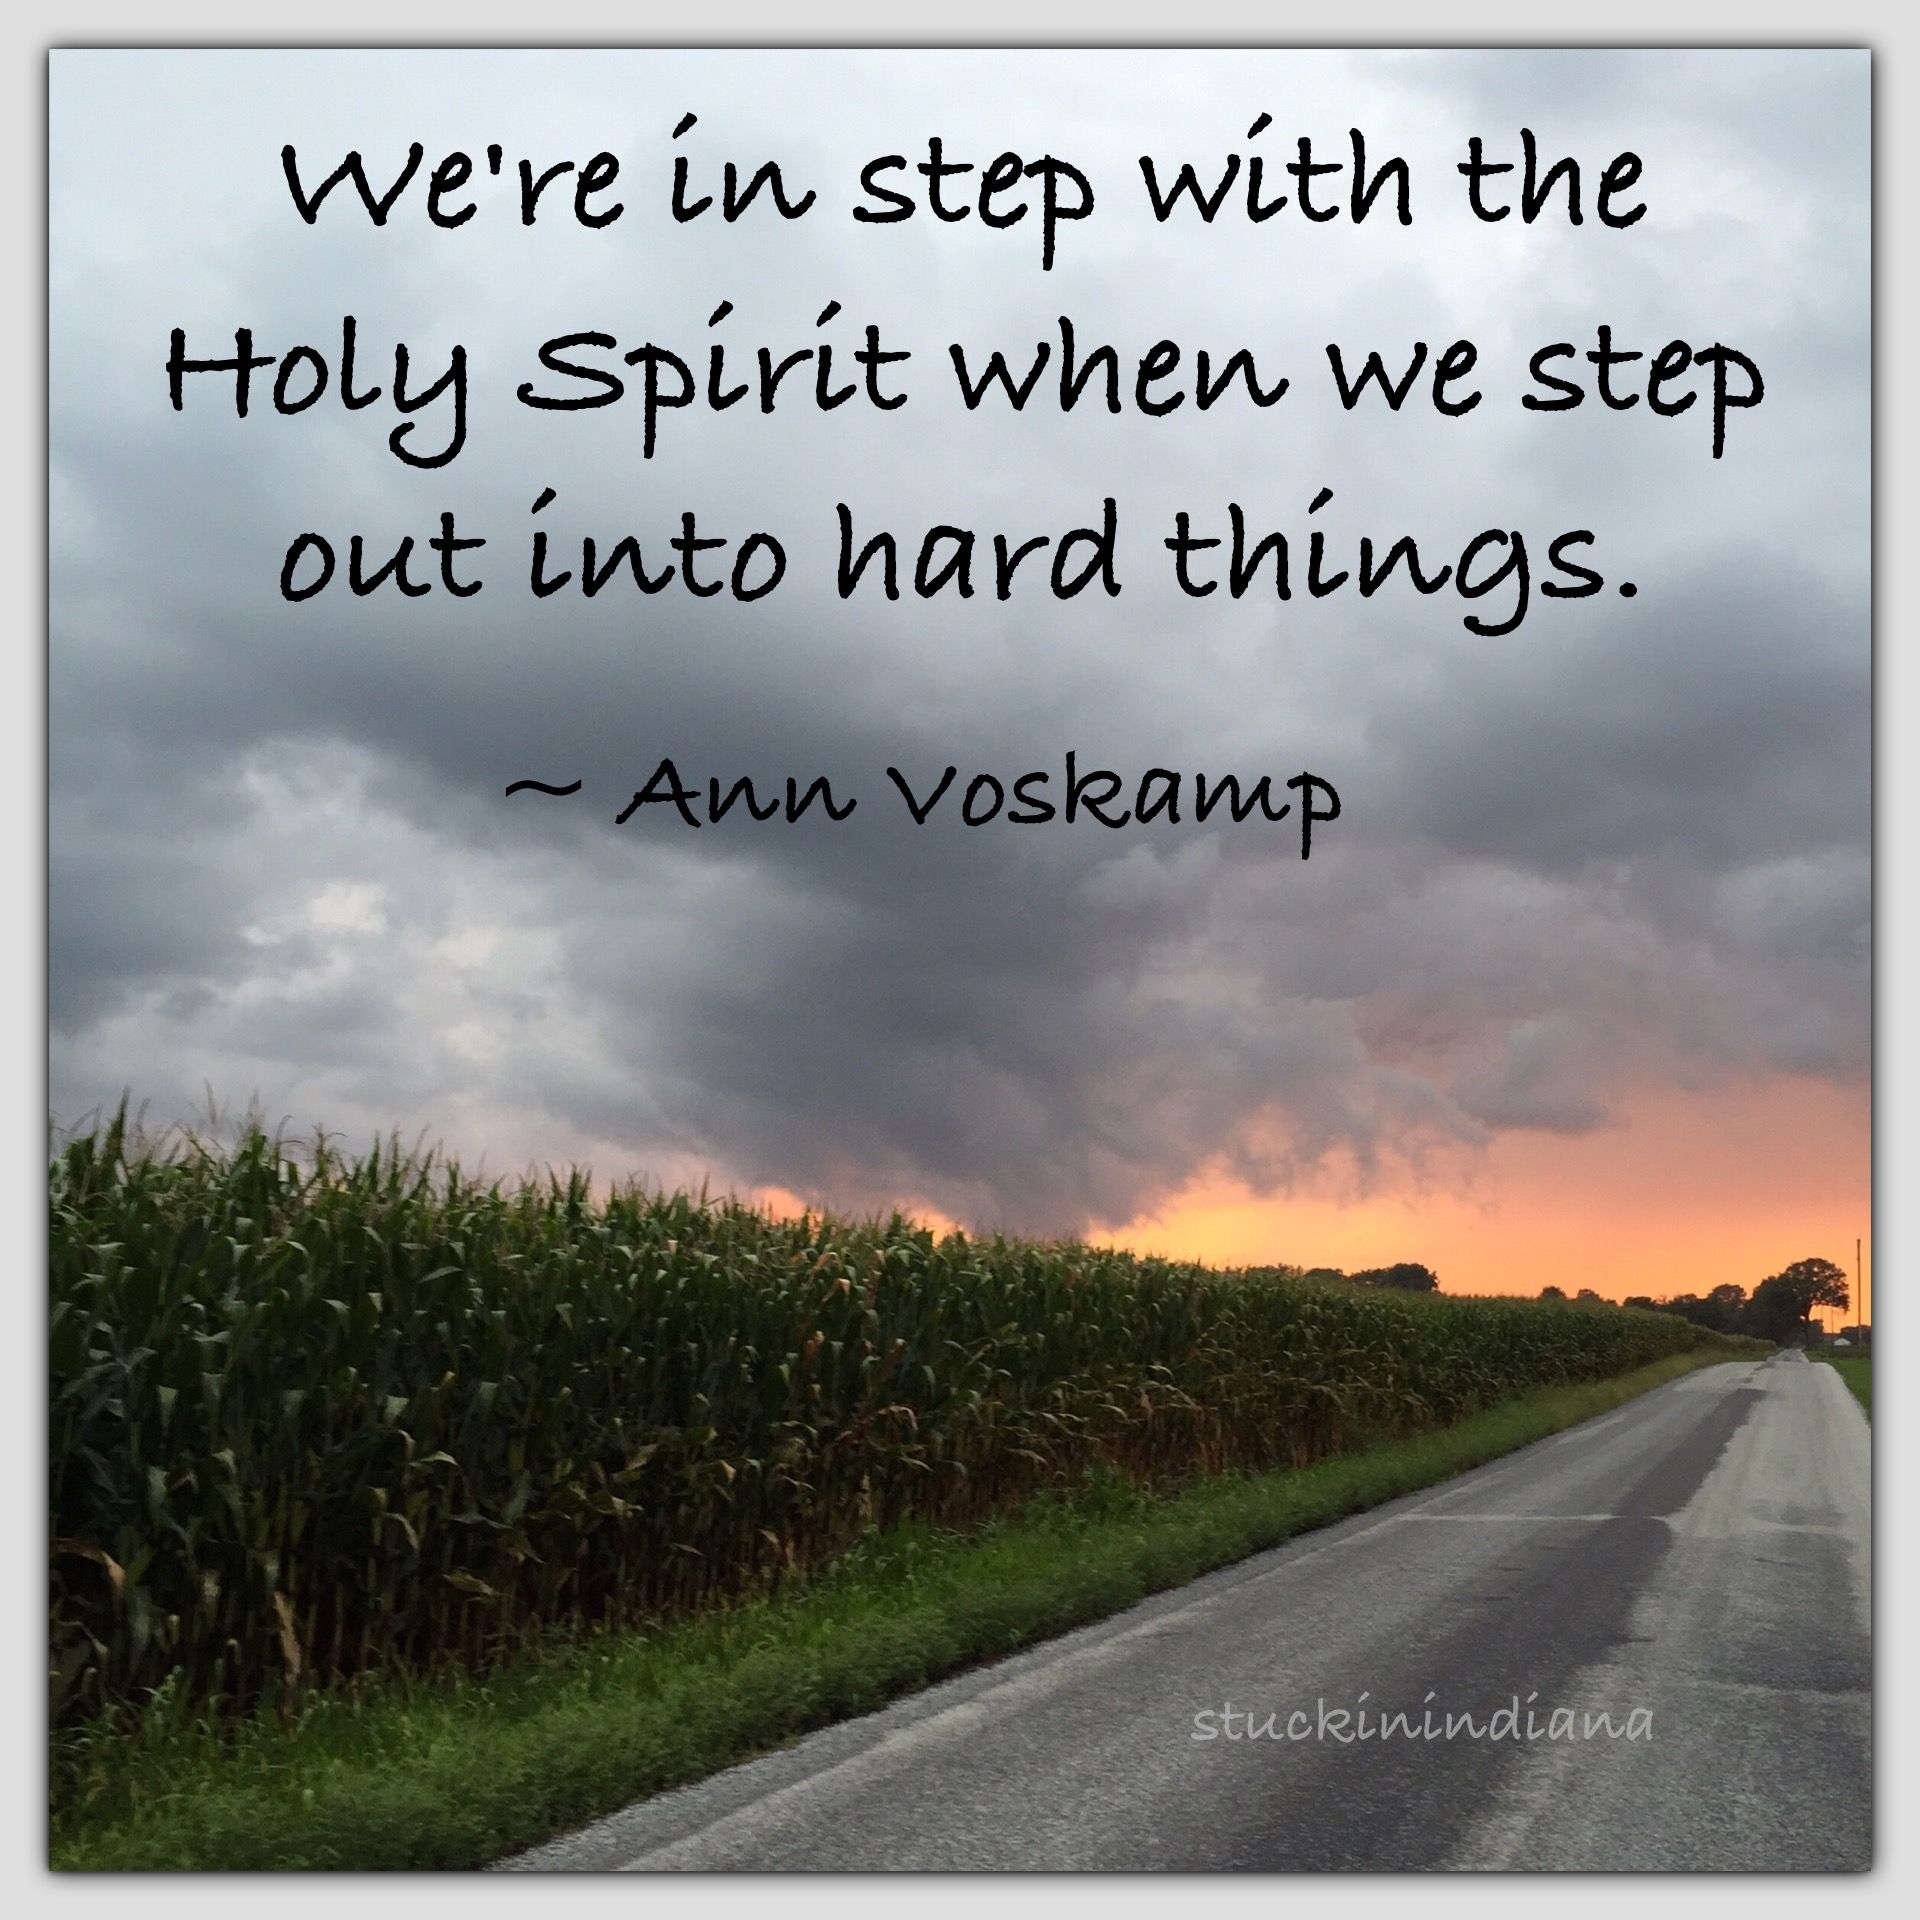 Quotes About The Holy Spirit We're In Step With The Holy Spirit When We Step Out Into Hard